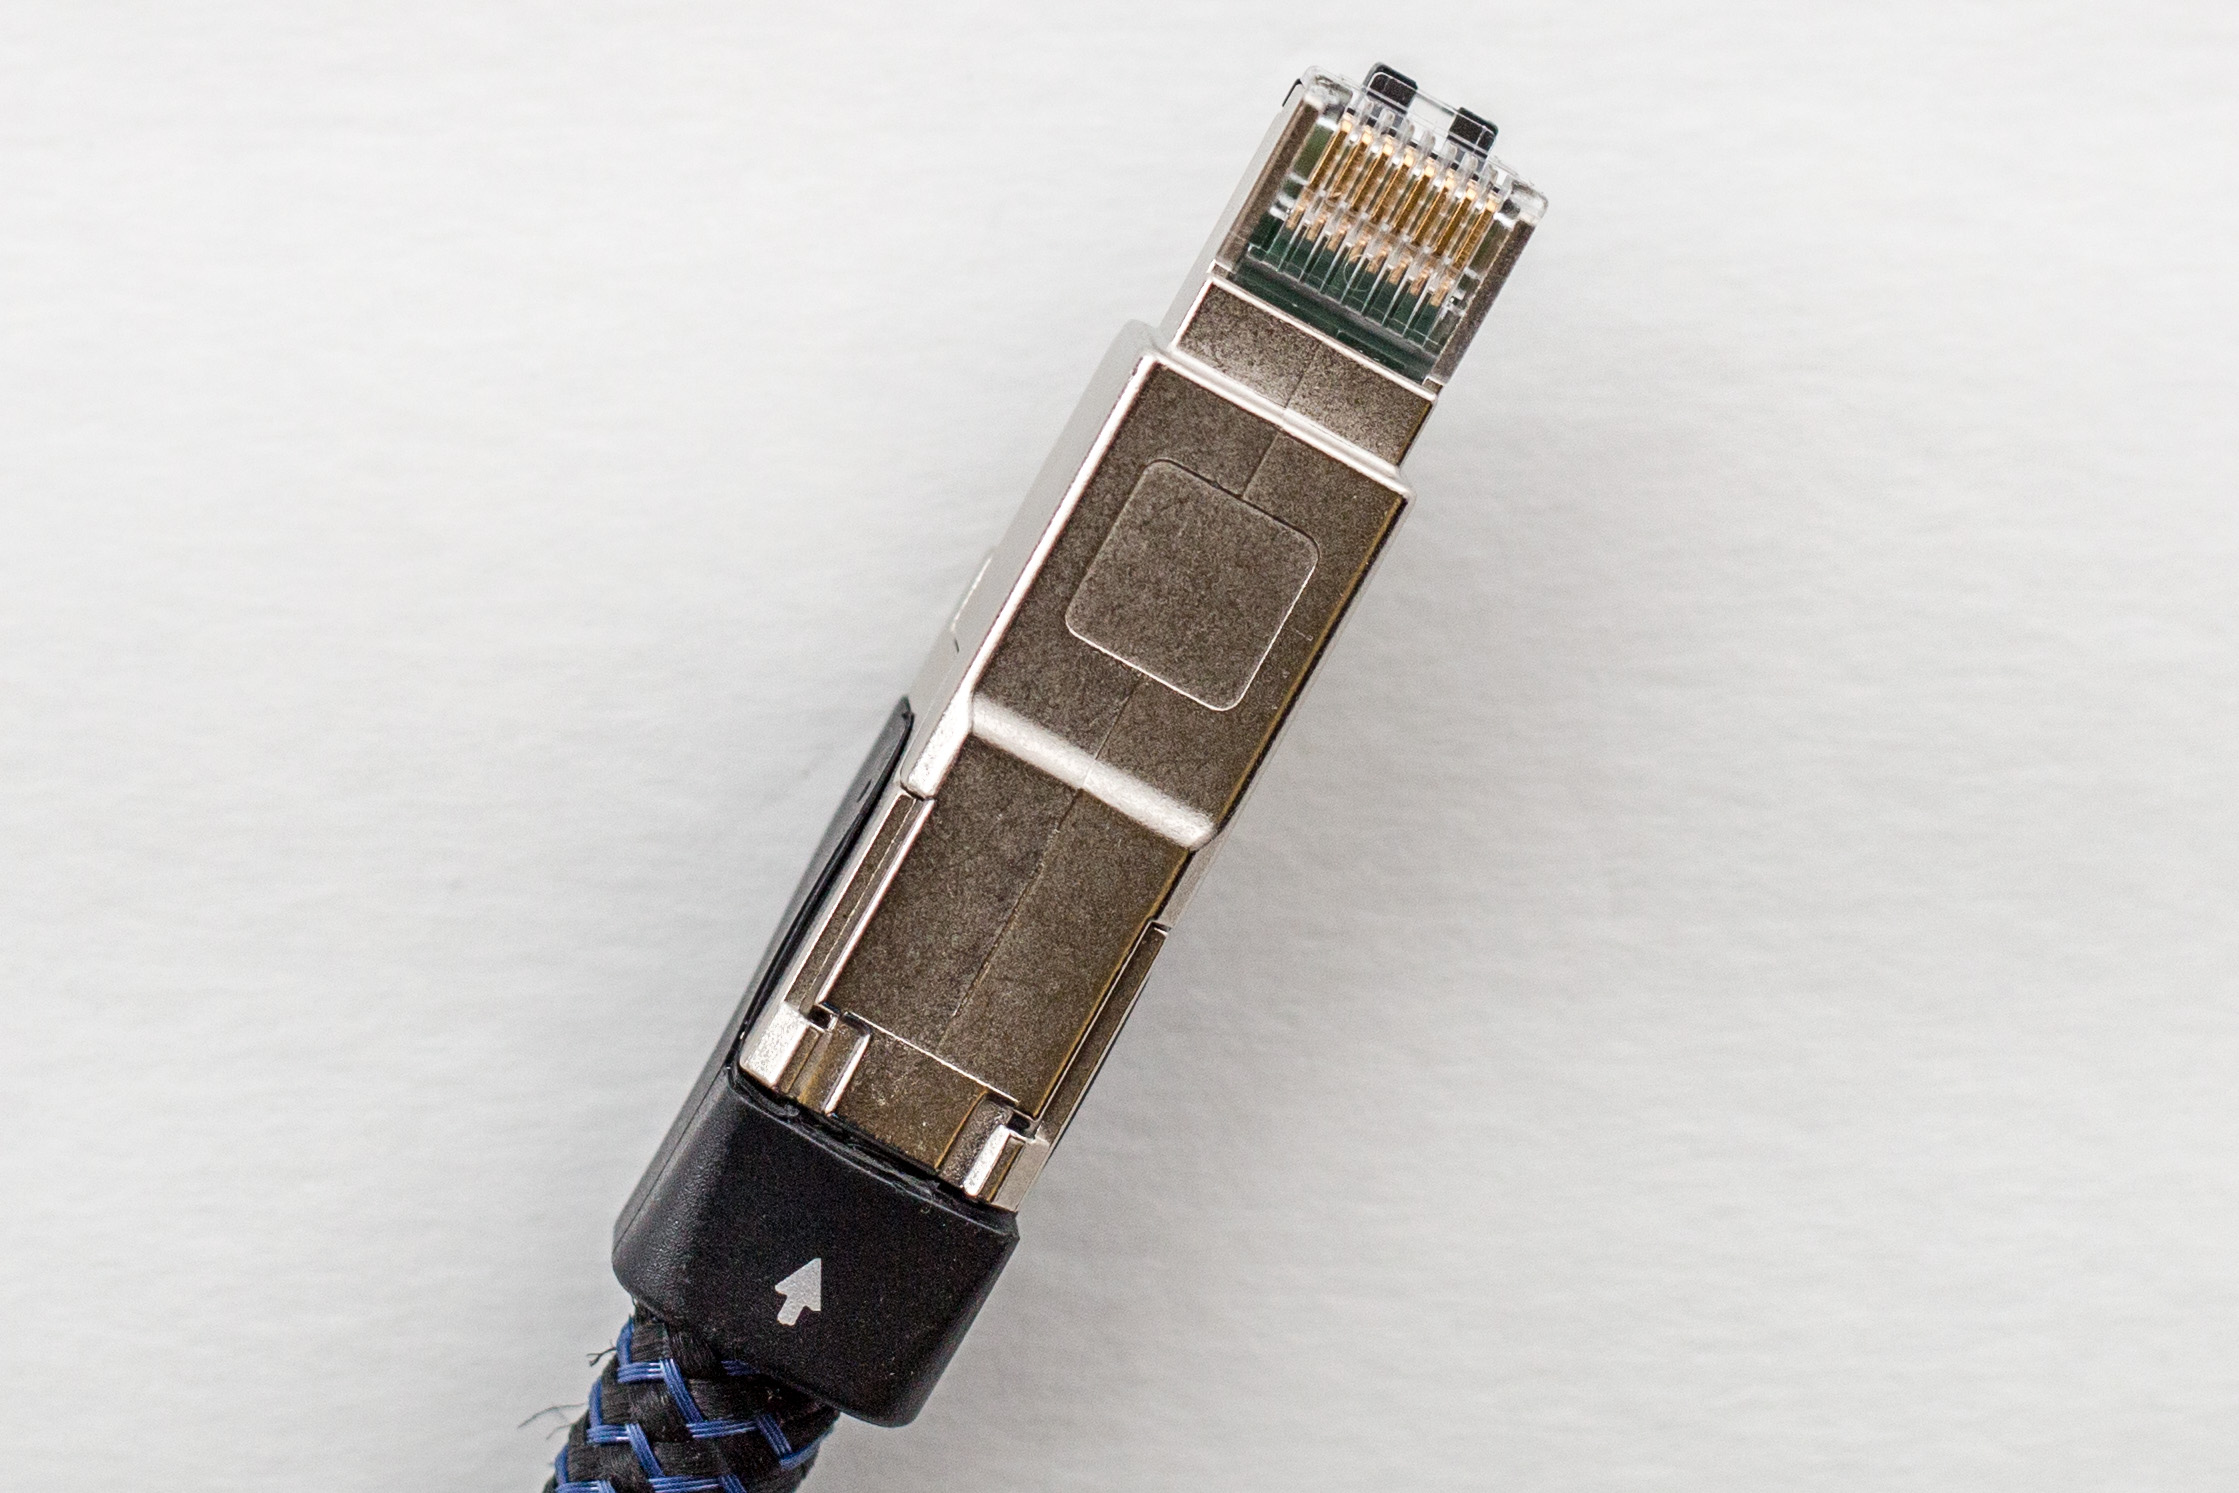 The Audiophiles Dilemma Strangers Cant Identify 340 Cables How To Make An Ethernet Cable Enlarge